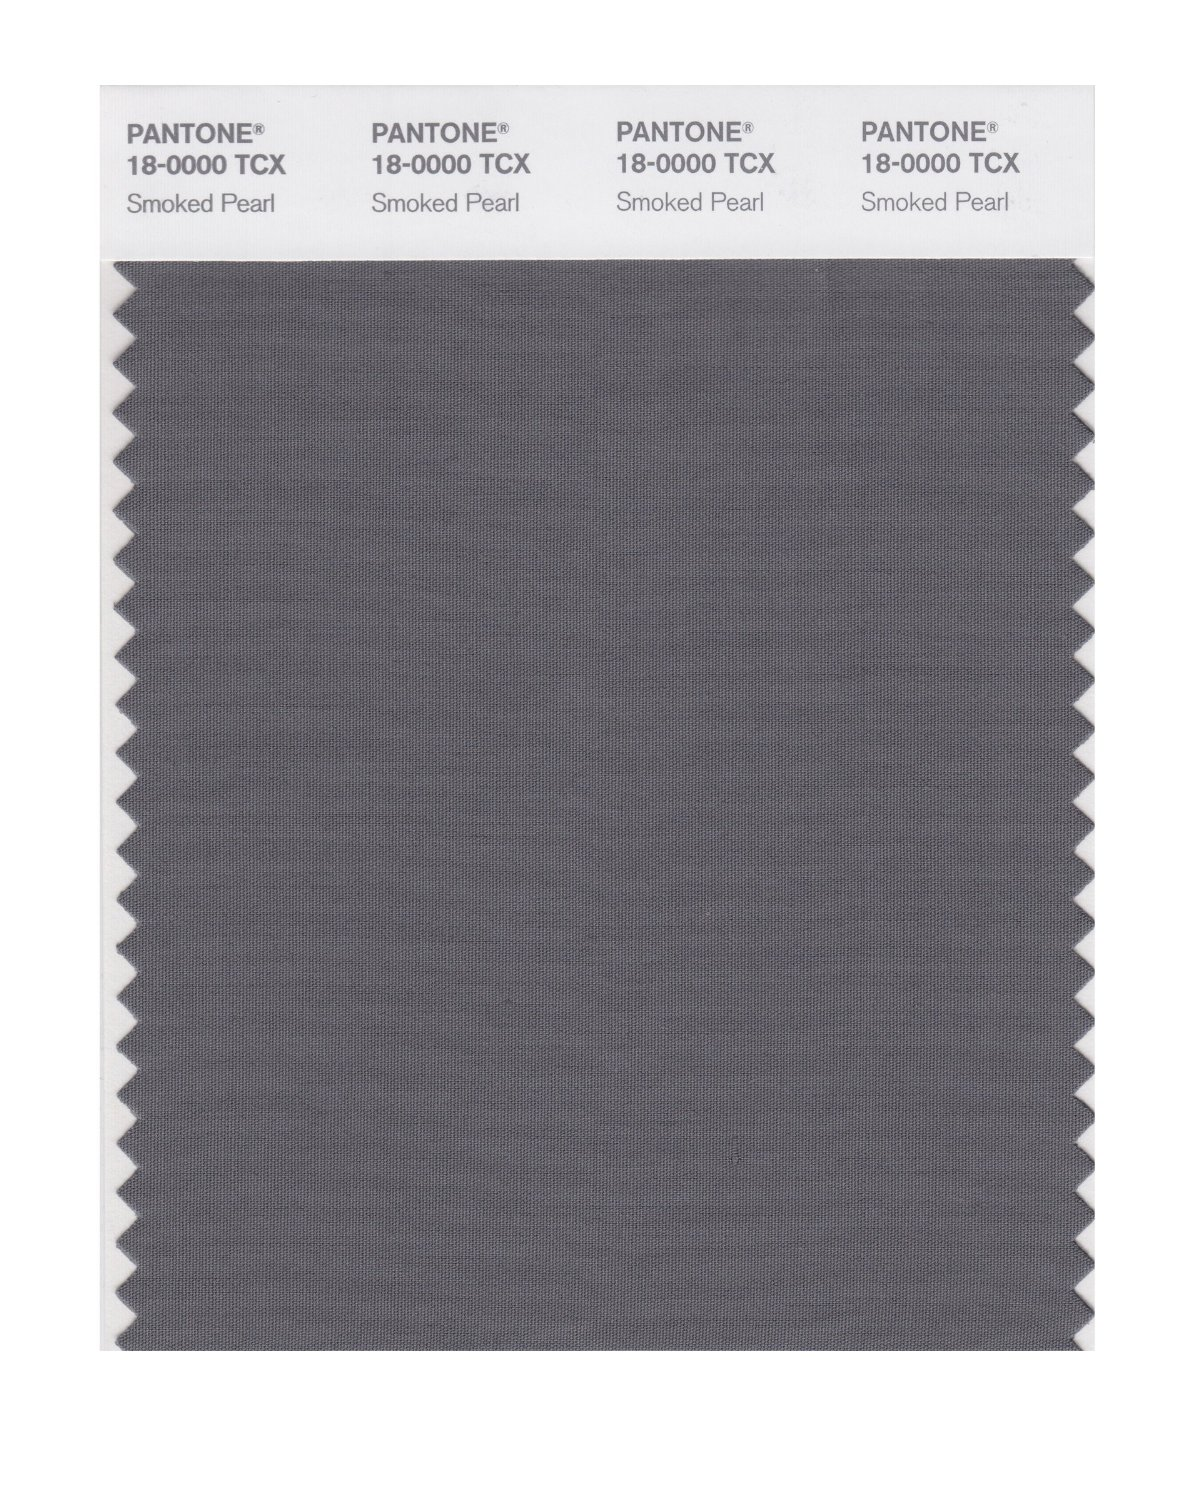 Pantone Smart Swatch 18-0000 Smoked Pearl